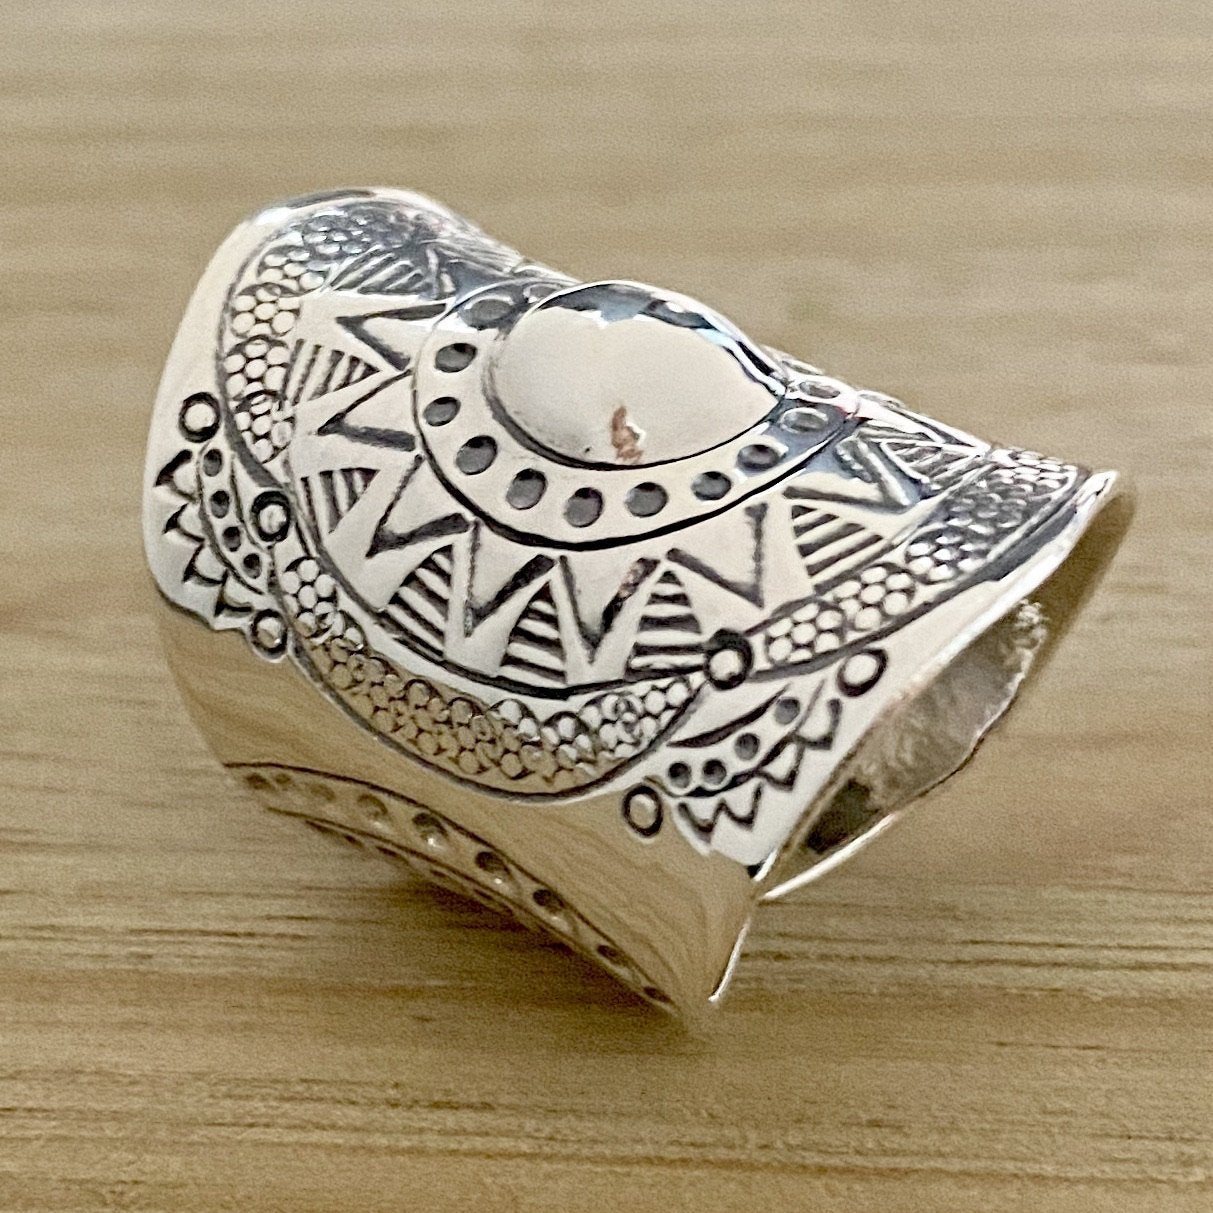 Laihas Statement Gypsy Cuff Sterling Silver Boho Ring Adjustable - Laihas Bohemian Dreaming